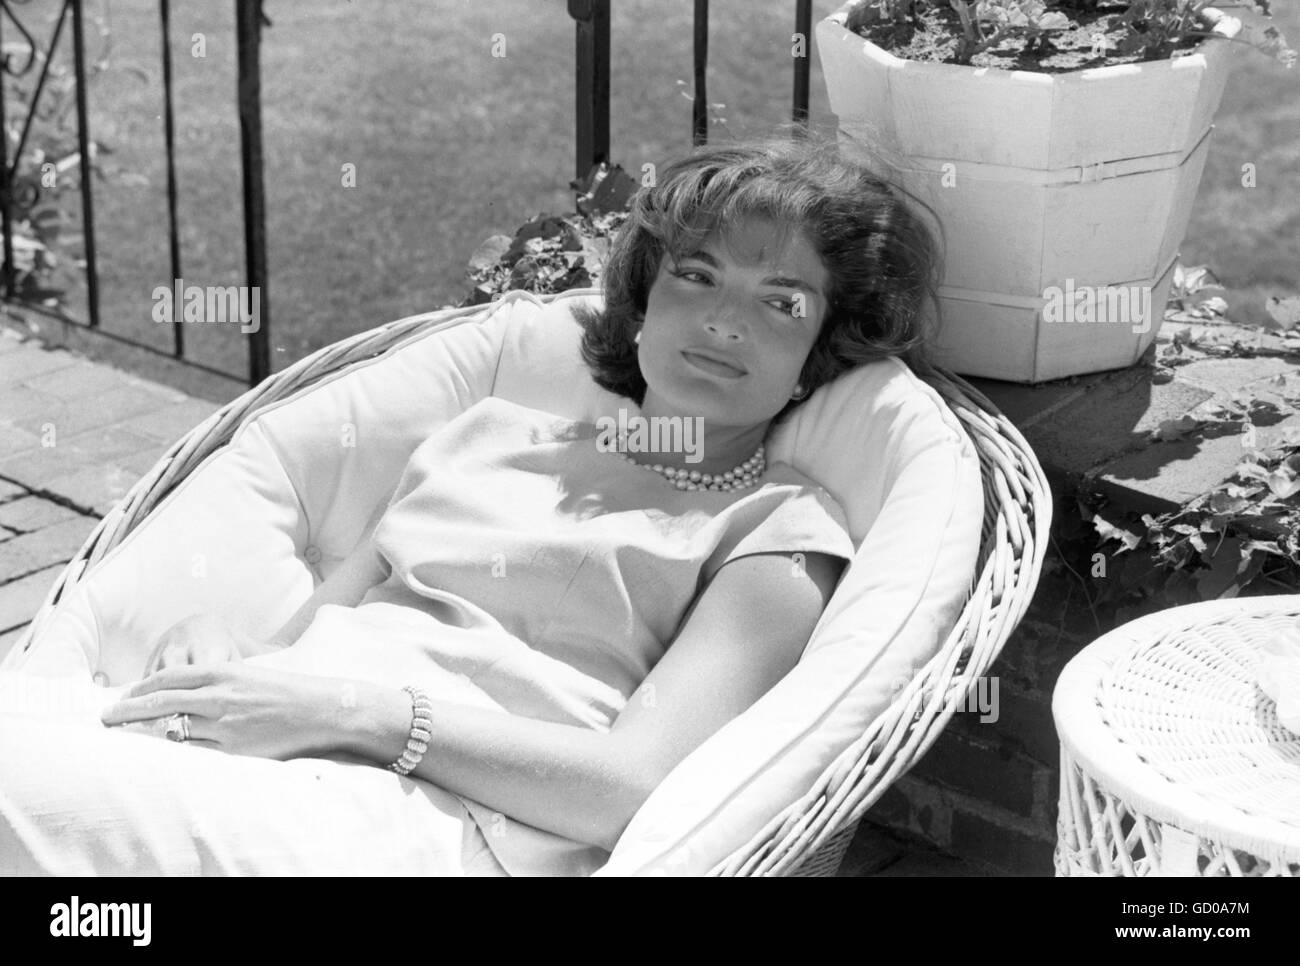 Jackie Kennedy at Hyannis Port - Stock Image